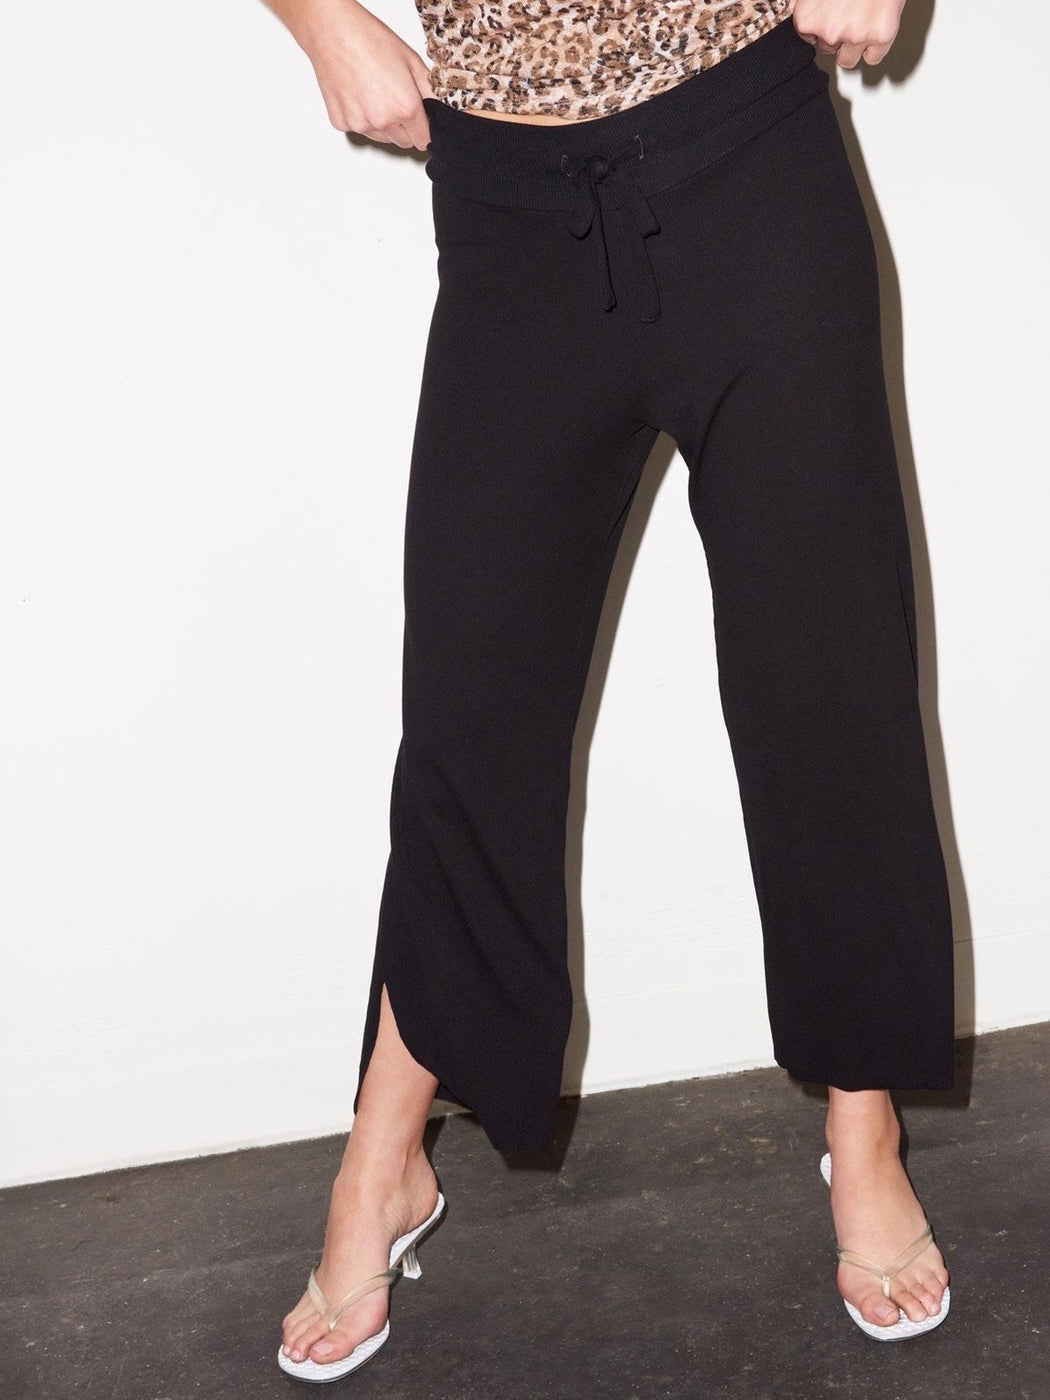 LNA Bianca Ribbed Pant in Black